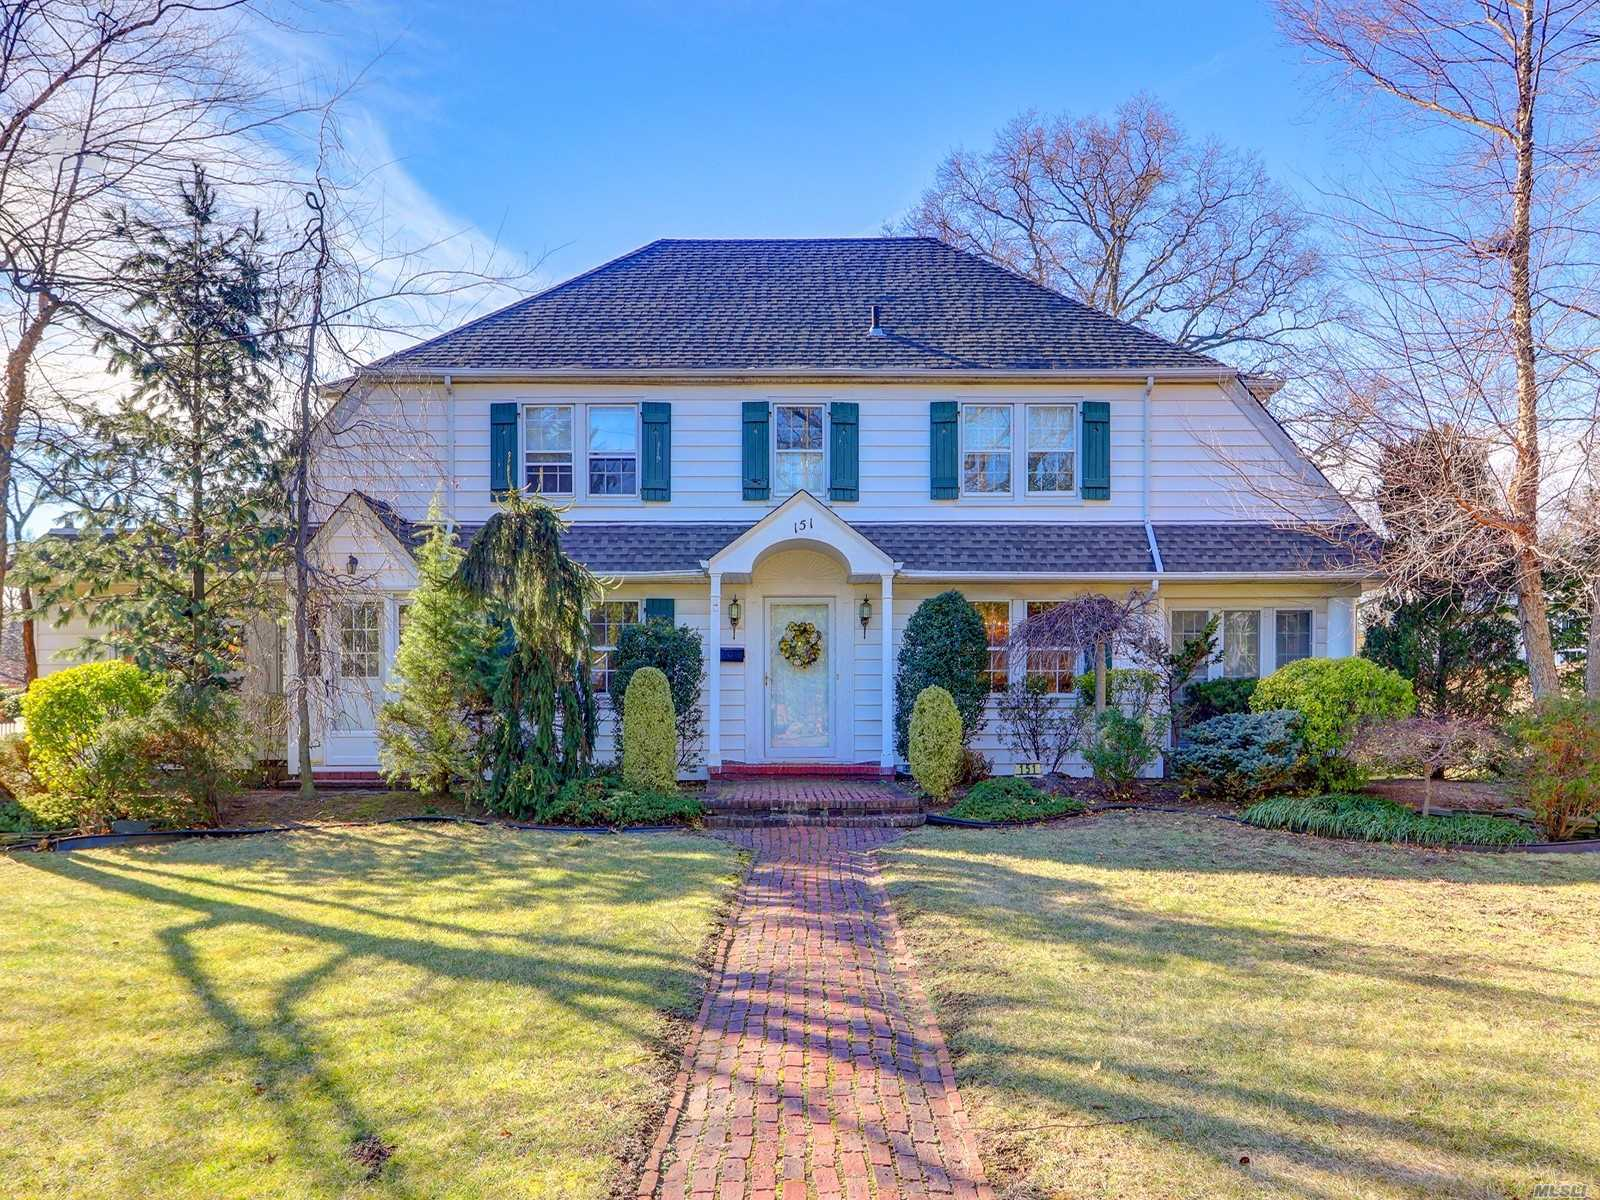 Don't Miss This Spectacular Center Hall Colonial In The Desirable Cathedral Gardens Section Of Hempstead!!! A Grand Foyer, Living Room W/Fp, Formal Dining Room W/Built-Ins, Eat-In Kitchen W/Fp, Great Room, And 2 Powder Rooms Complete The 1st Floor. The 2nd Floor Features A Master Bedroom W/Bath, 3 Addl Bedrooms, Hall Bath And Staircase To 3rd Floor Attic. Impressive 100 X249 Lot Is Ideal For A Future Inground Swimming Pool. Zoning Provides Various Permitted Uses.